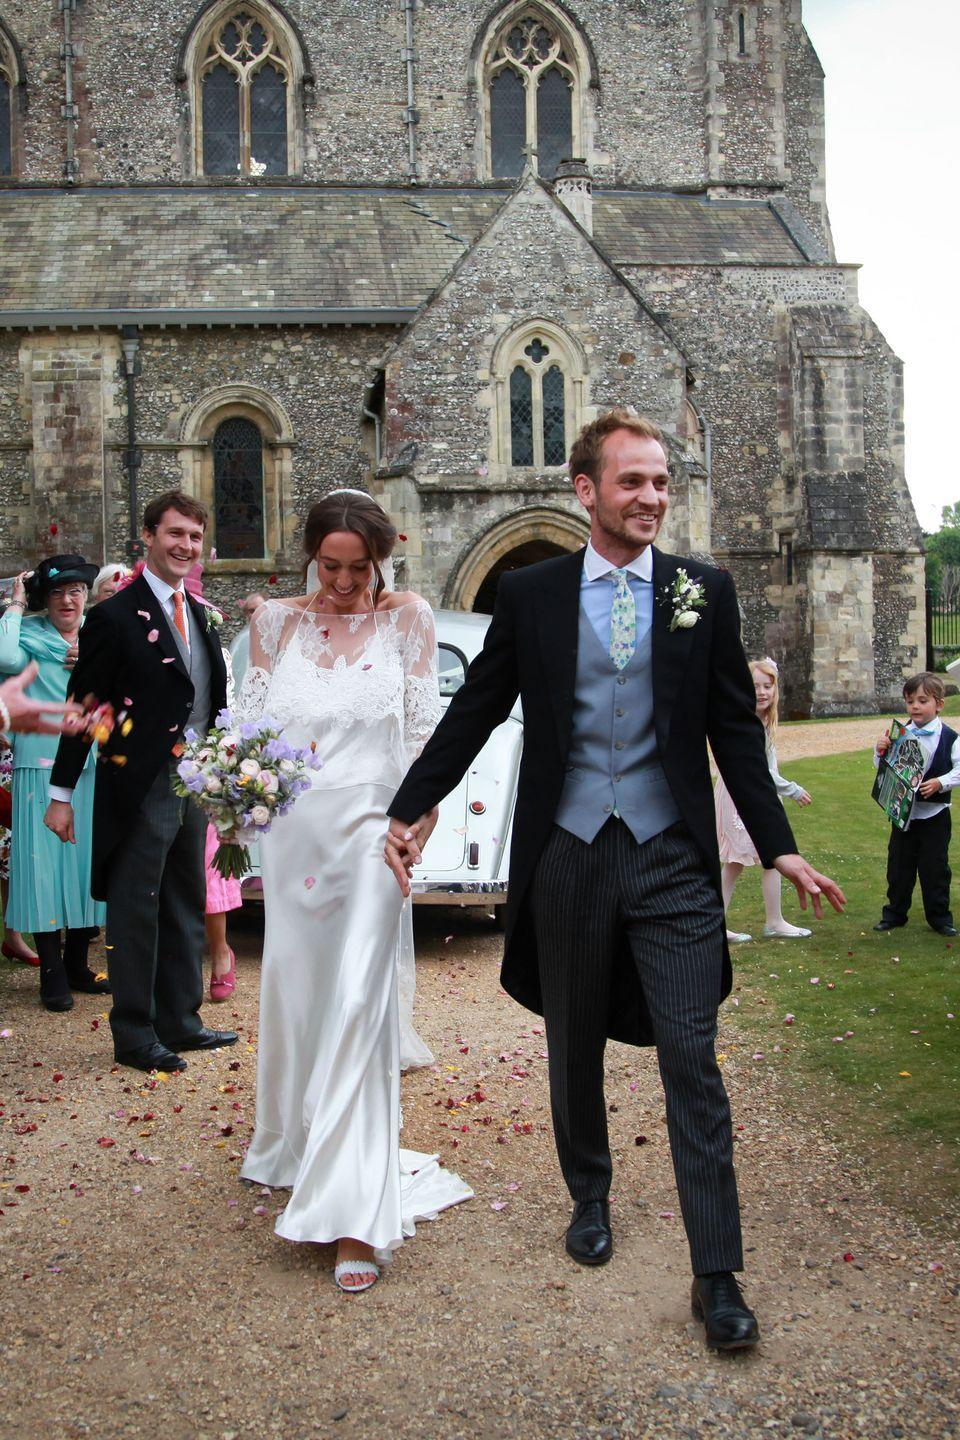 <p><strong>Wedding dress:</strong> Delphine Manivet from the Mews of Notting Hill </p><p><strong>Lace top and veil:</strong> Rime Arodaky from the Mews of Notting Hill </p><p><strong>Shoes:</strong> Tabitha Simmons</p><p><strong>Jewellery:</strong> Debbie Graham Jewellery</p>